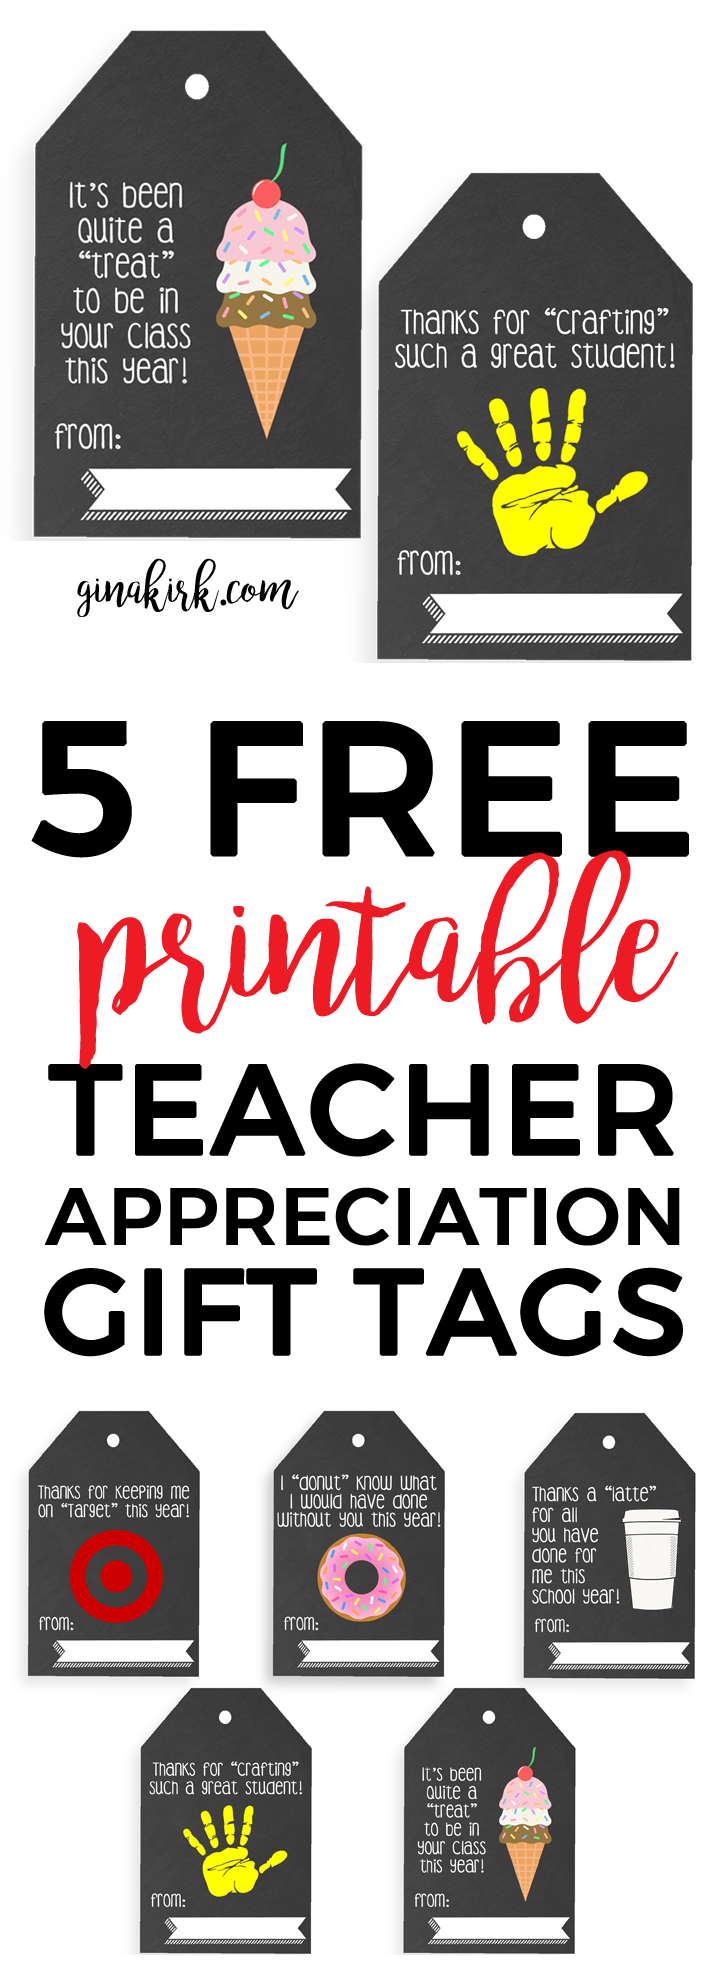 Printable teacher appreciation tags is she really free printable teacher gift tags teacher appreciation week ideas teacher gifts free printable negle